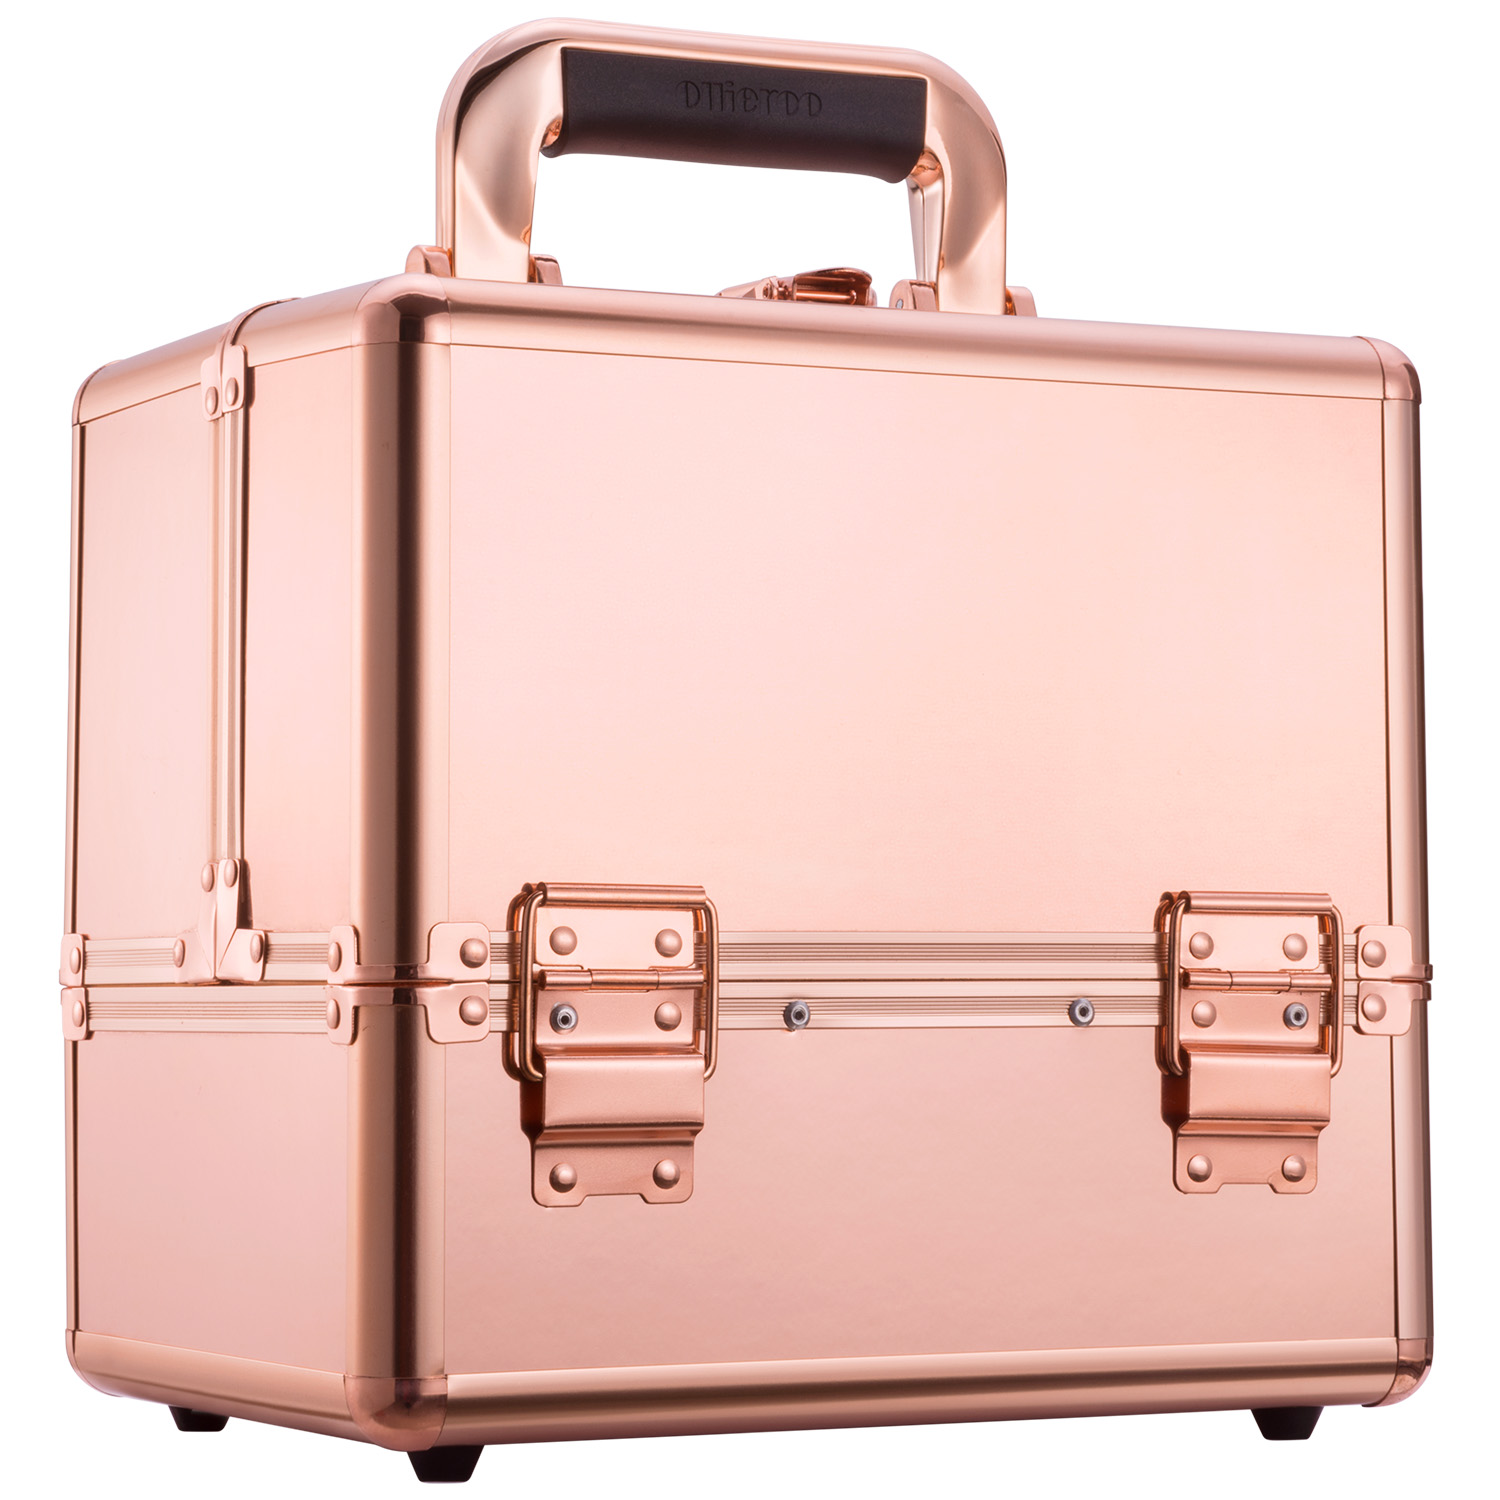 Mllieroo Professional Portable Makeup Train Case Aluminum frame with Locks and Folding Trays,Rose Gold